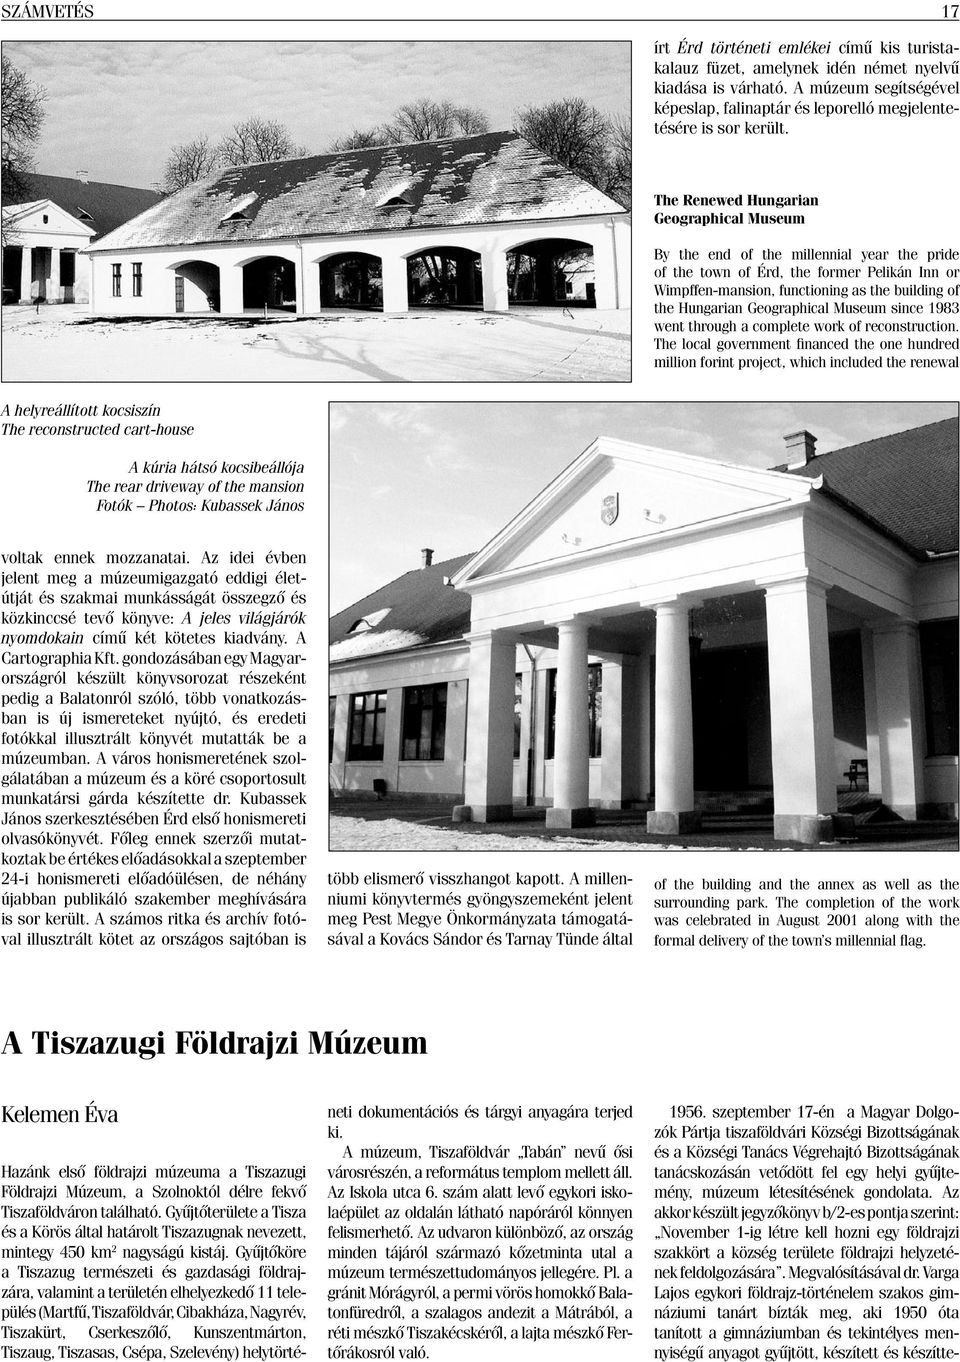 The Renewed Hungarian Geographical Museum By the end of the millennial year the pride of the town of Érd, the former Pelikán Inn or Wimpffen-mansion, functioning as the building of the Hungarian